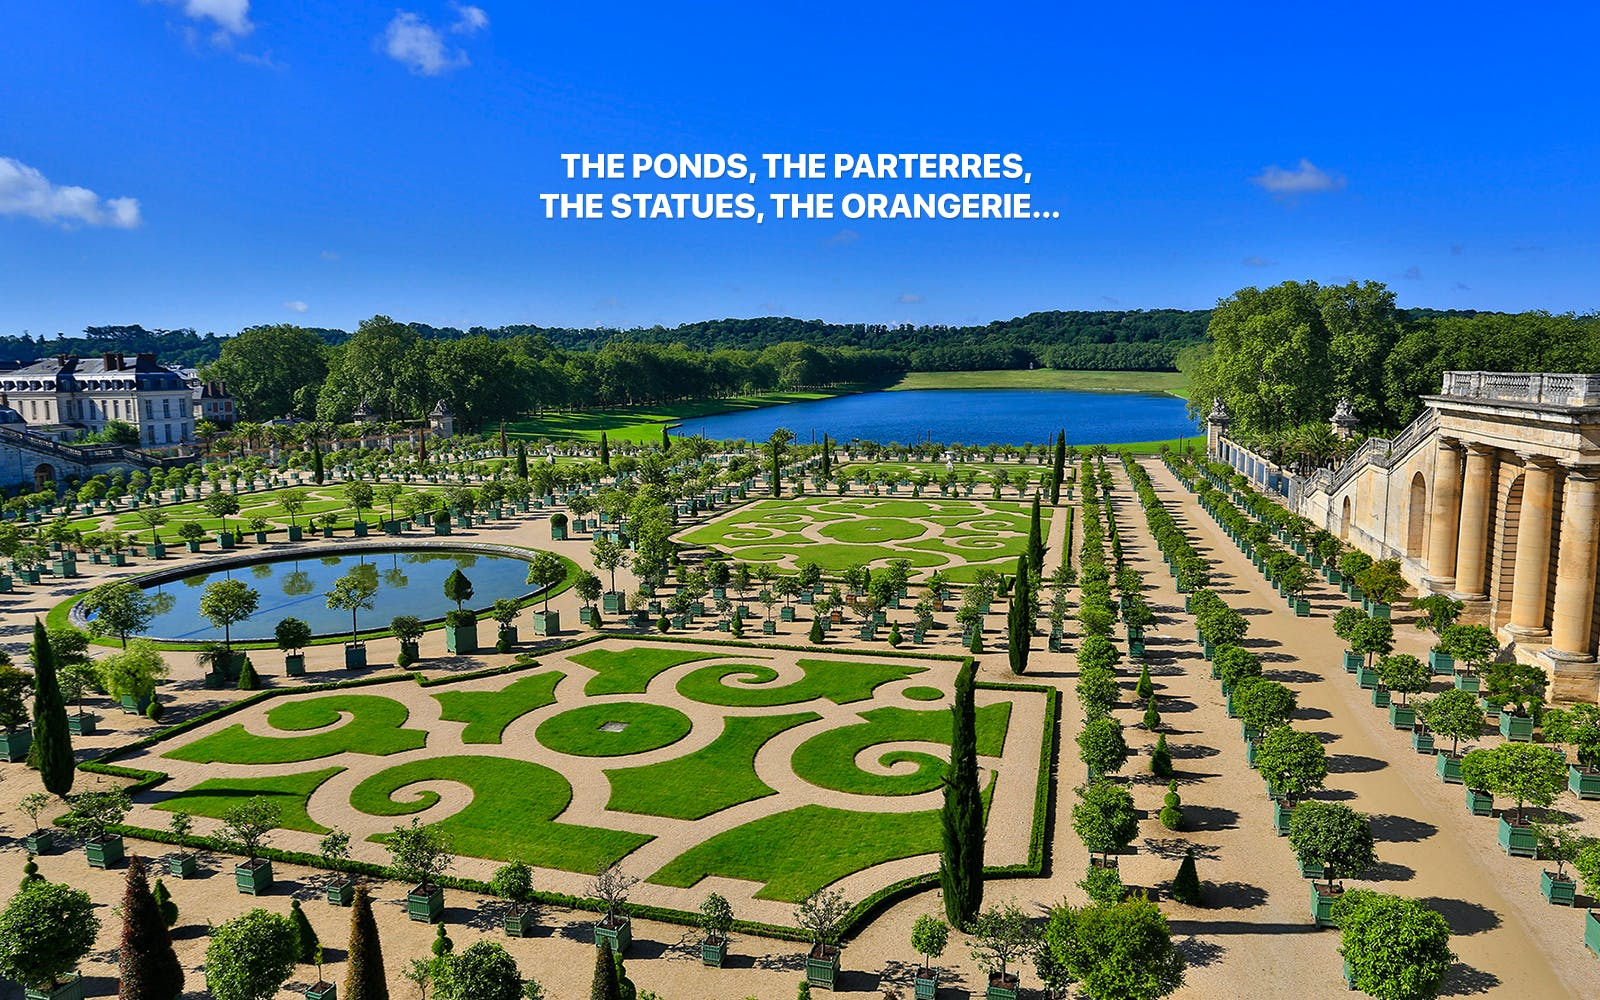 versailles all access passport entry with fountain shows and musical gardens-4